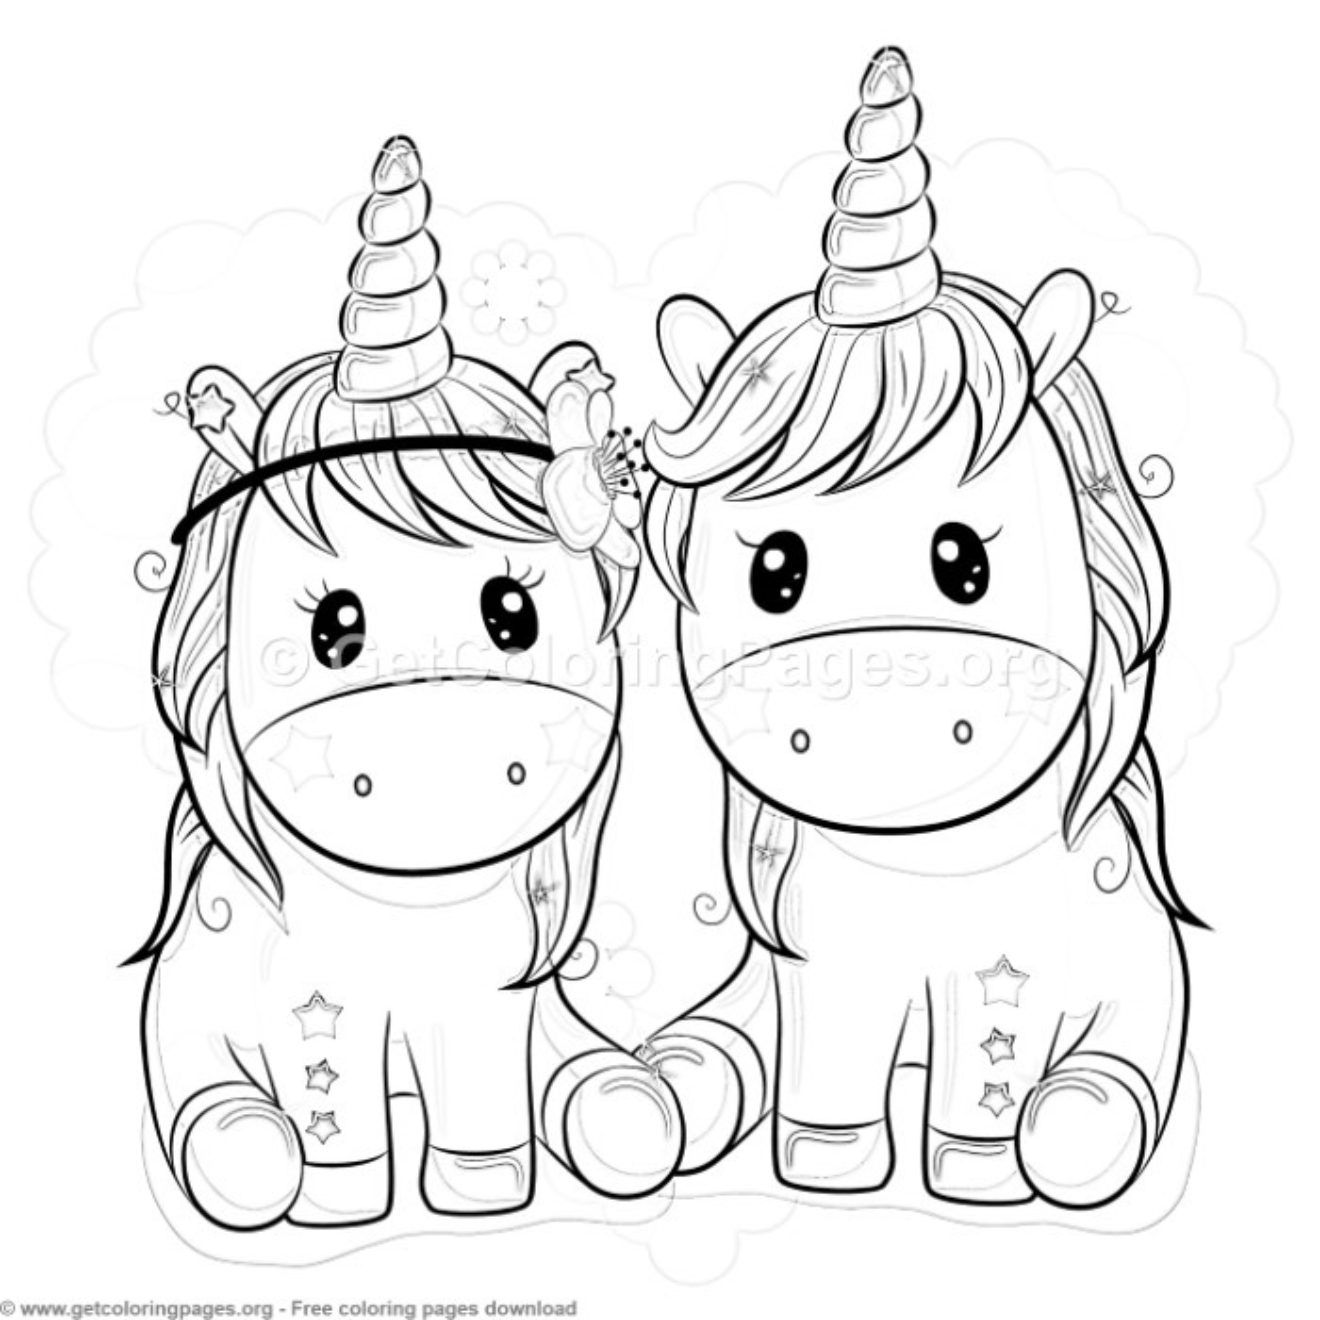 Unicorn Coloring Pages For Adults Getcoloringpages Org Unicorn Coloring Pages Cute Coloring Pages Animal Coloring Pages